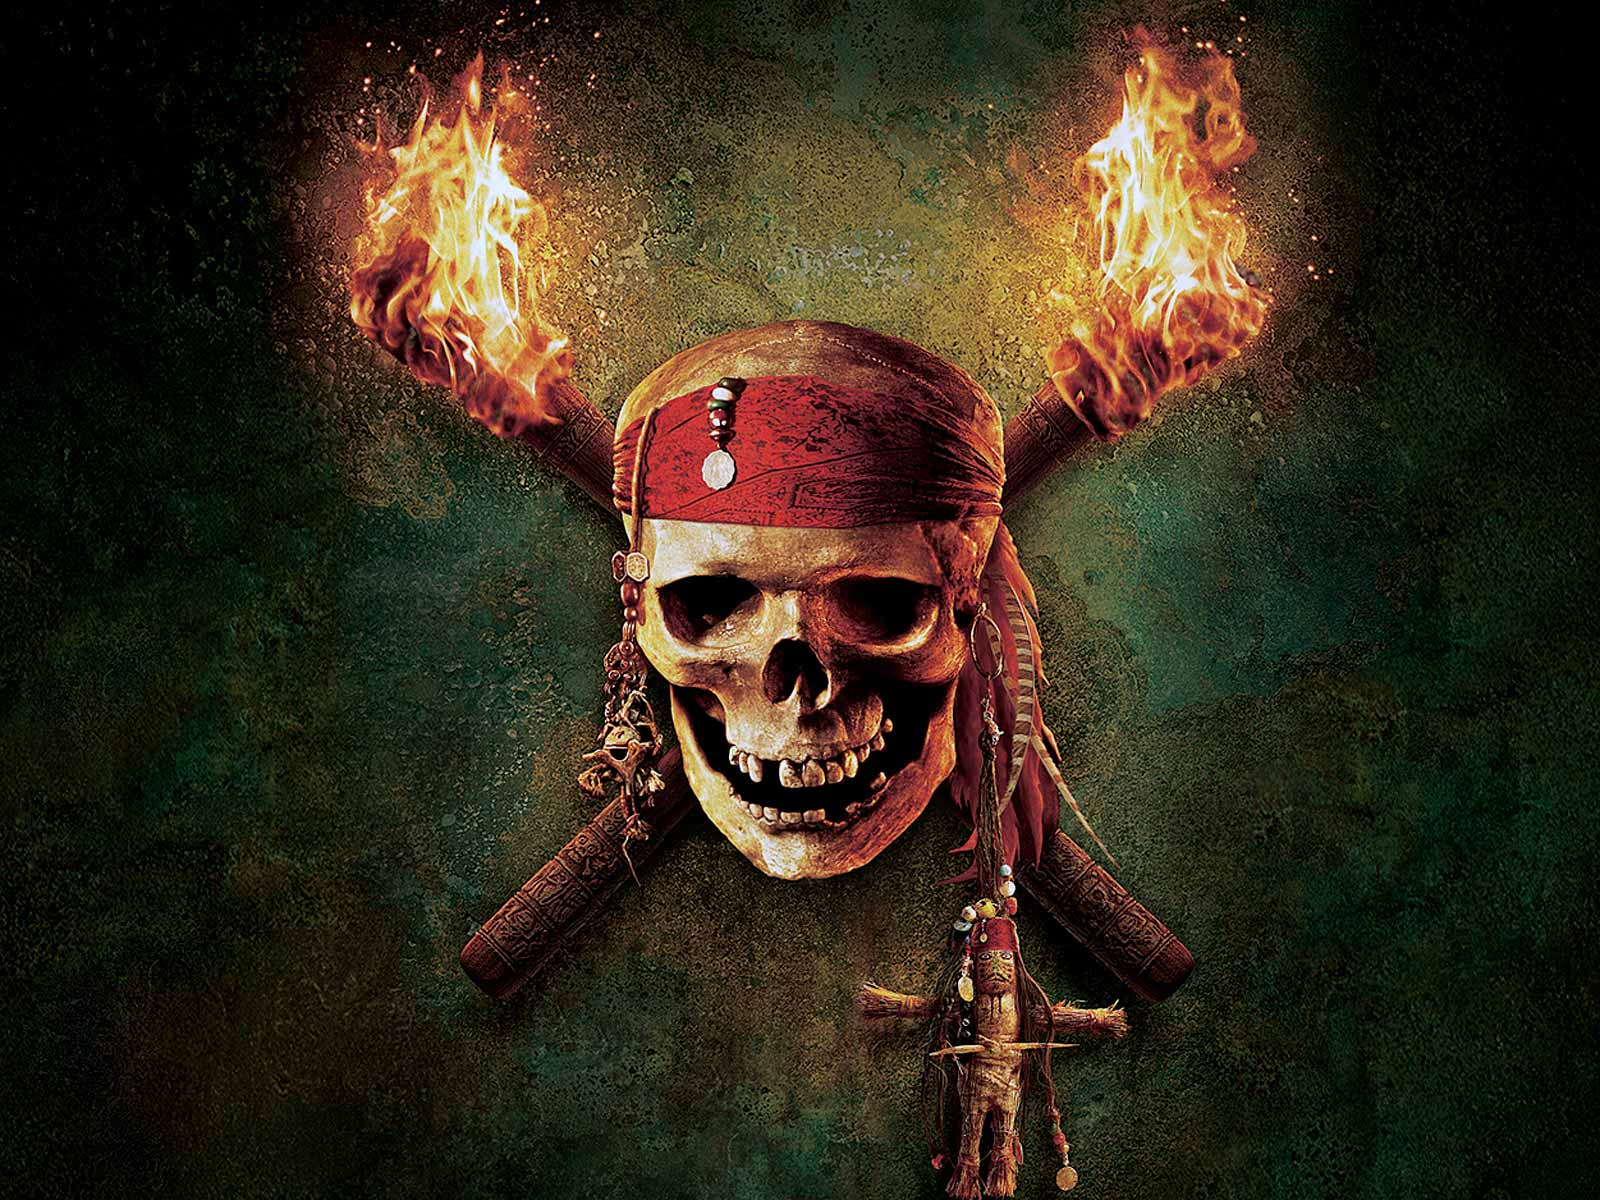 pirate skull wallpapers - wallpaper cave